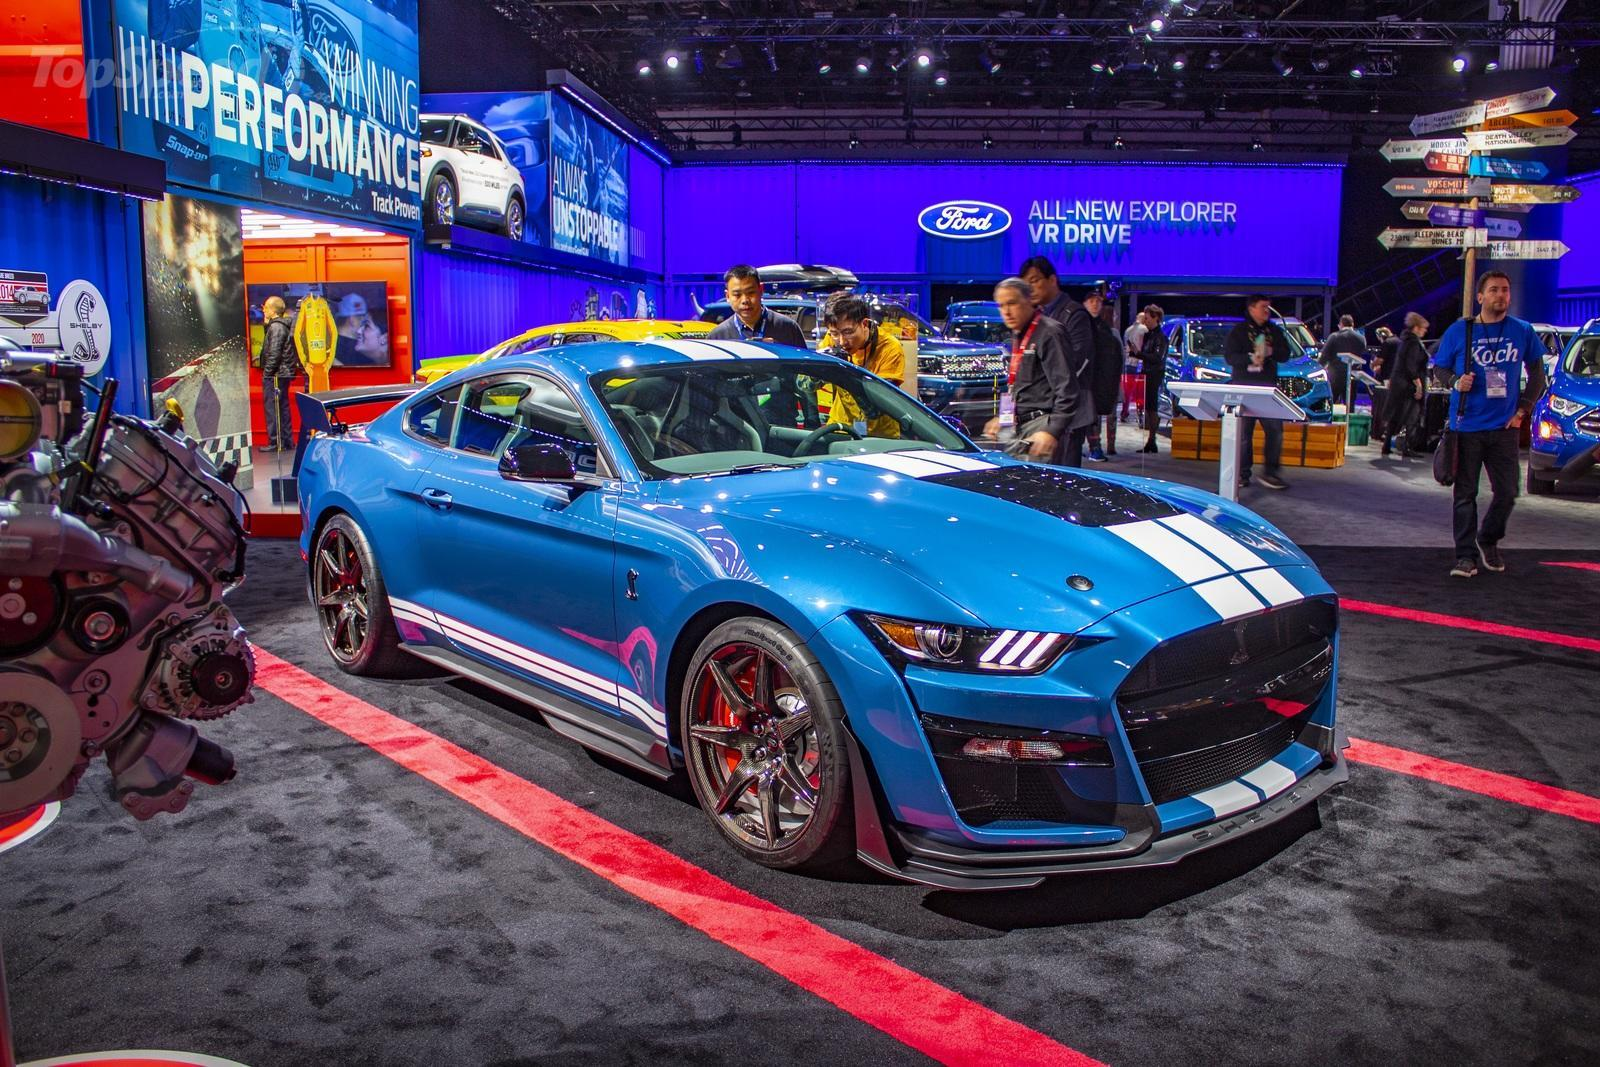 Ford Mustang Shelby Latest News Reviews Specifications